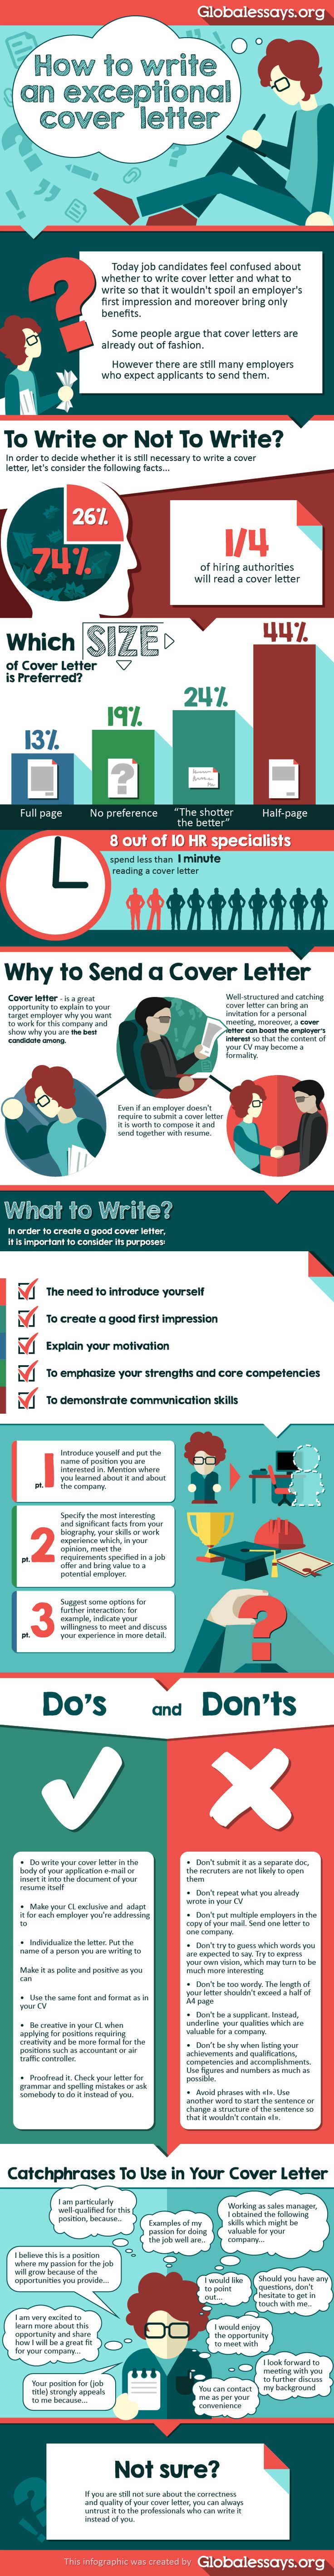 Best 20 cover letters ideas on pinterest cover letter example how to write an exceptional cover letter mitanshu Images